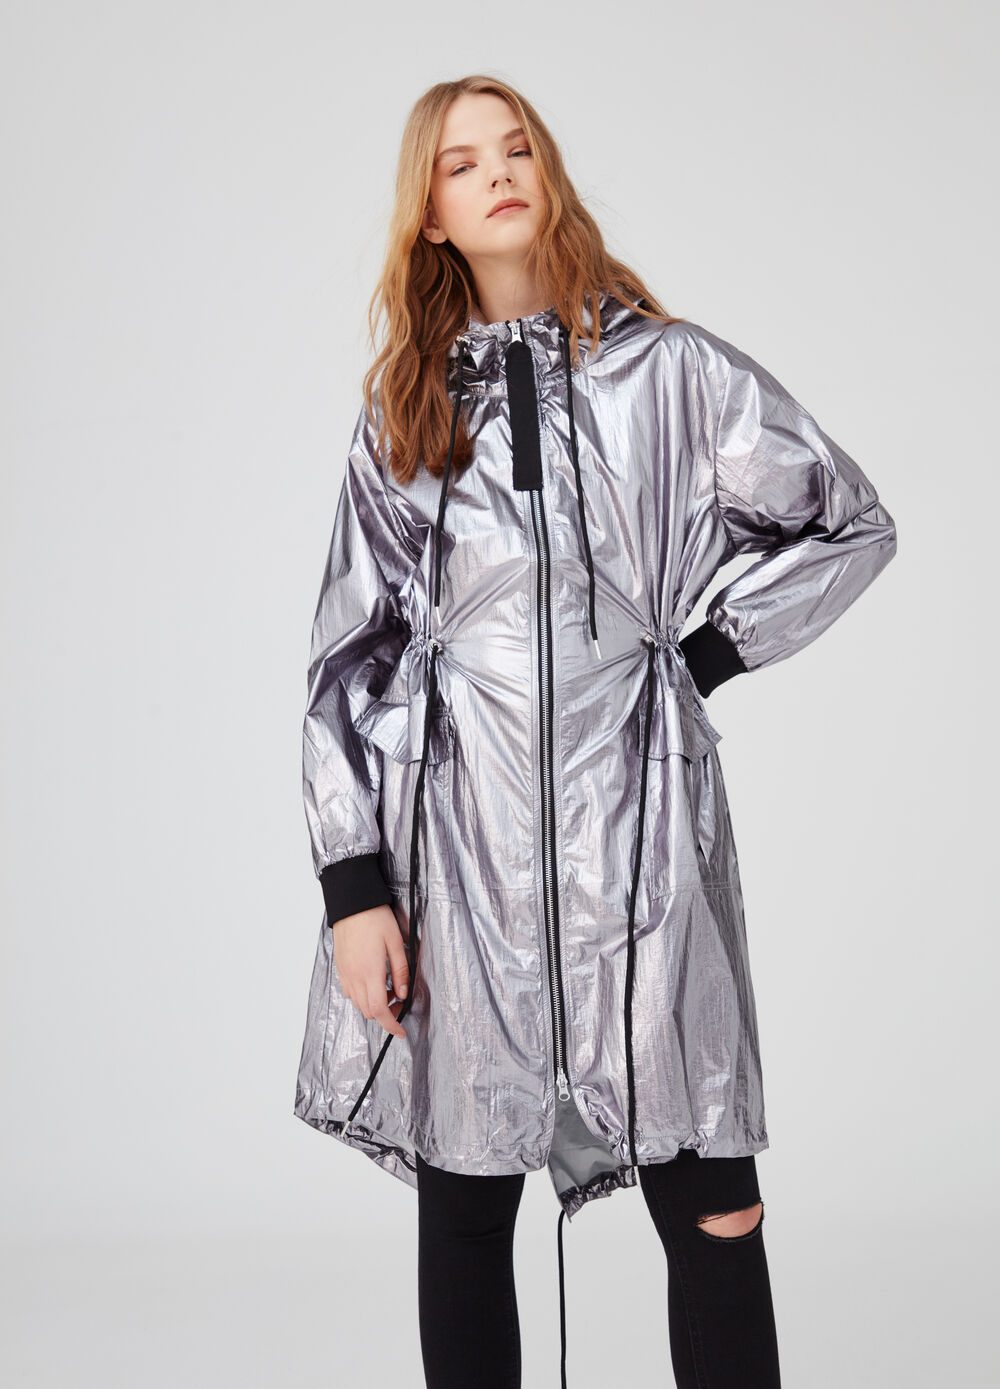 Rain jacket with drawstring hood and pockets